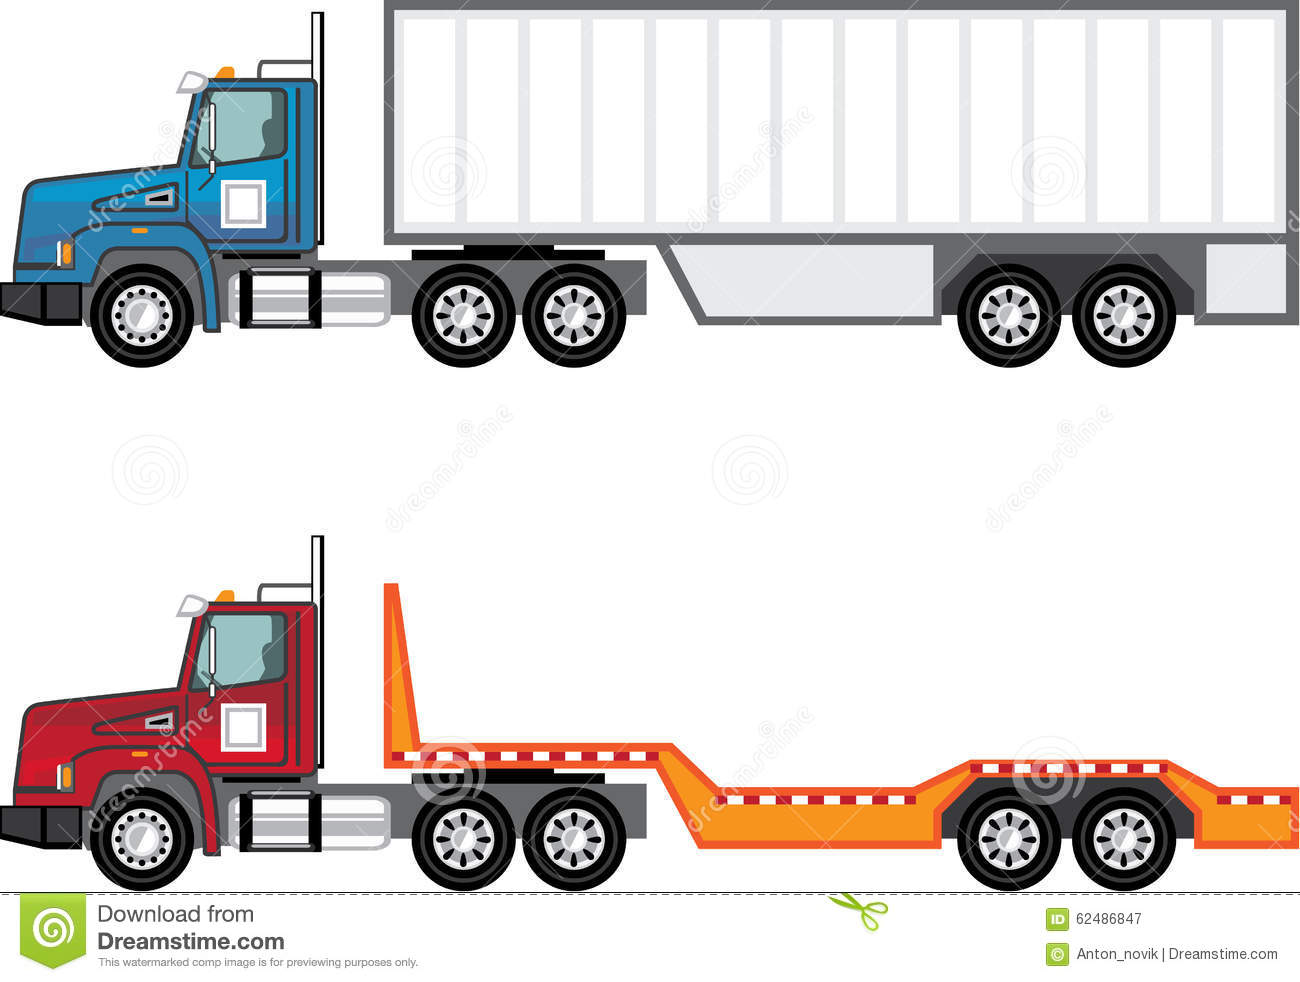 Semi trucks clipart clipart black and white library Trucking Clipart | Free download best Trucking Clipart on ... clipart black and white library